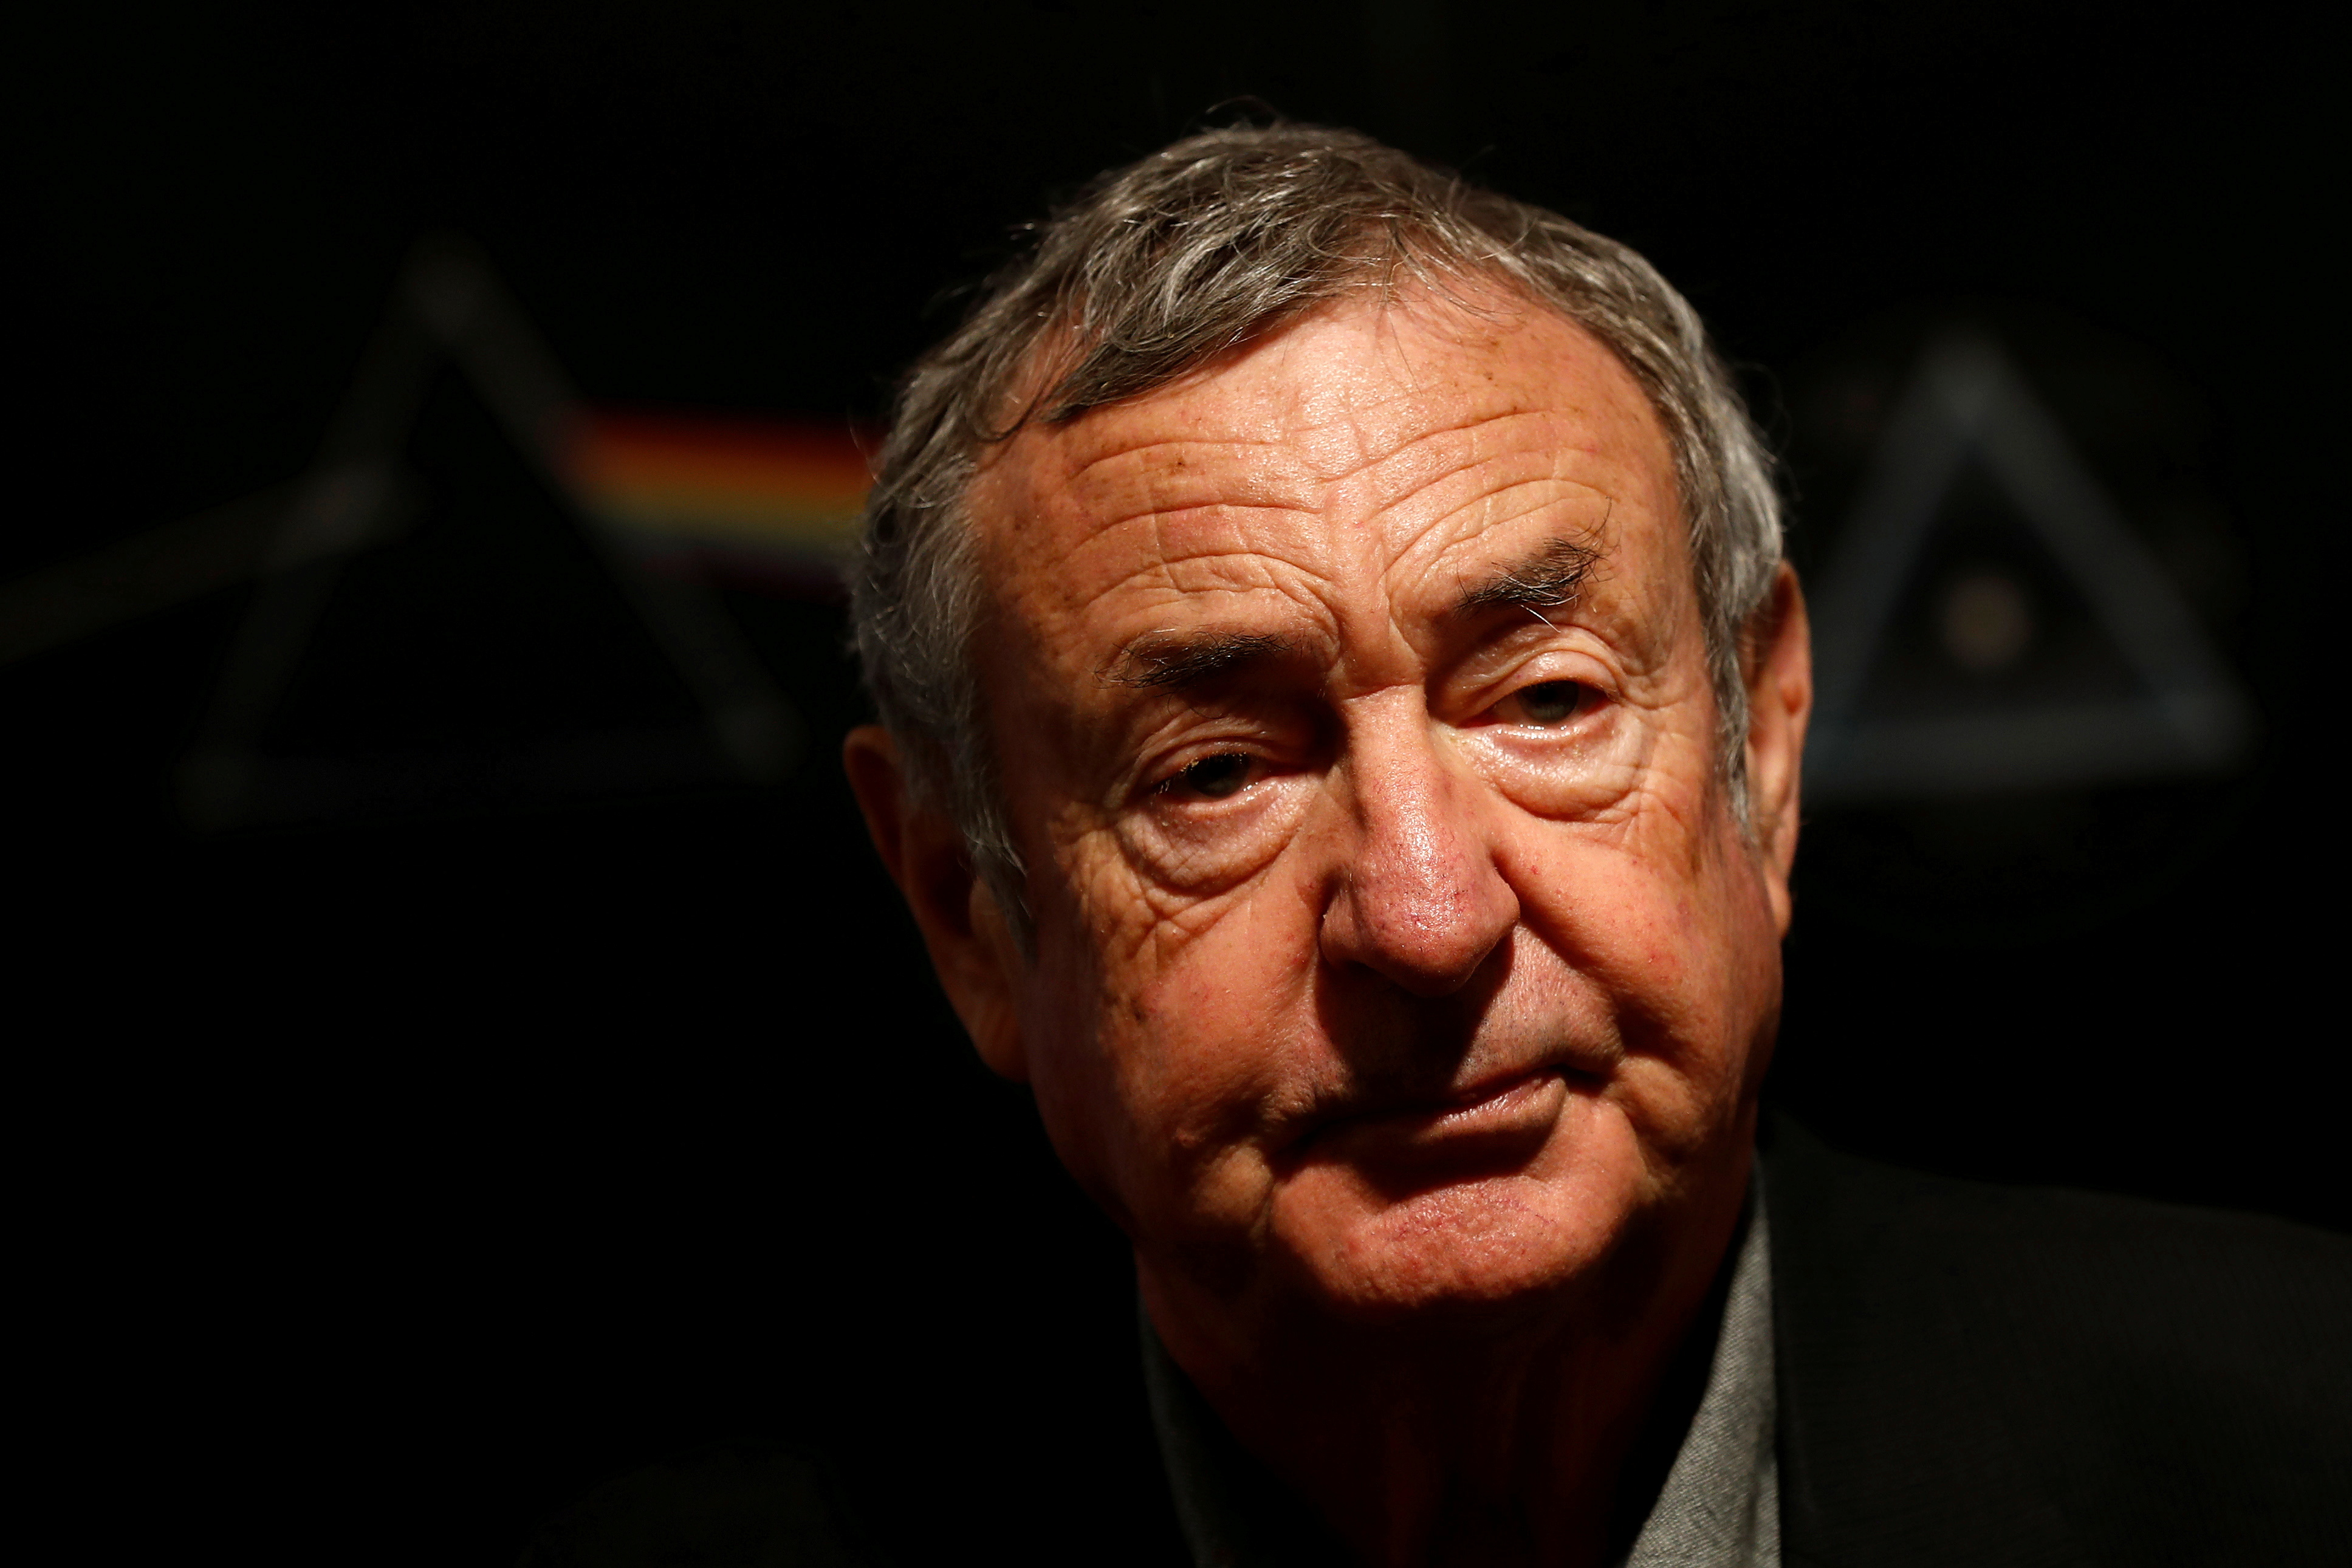 Nick Mason of Pink Floyd poses for photographers at Bonhams auctioneers in London, March 20, 2017. REUTERS/Stefan Wermuth